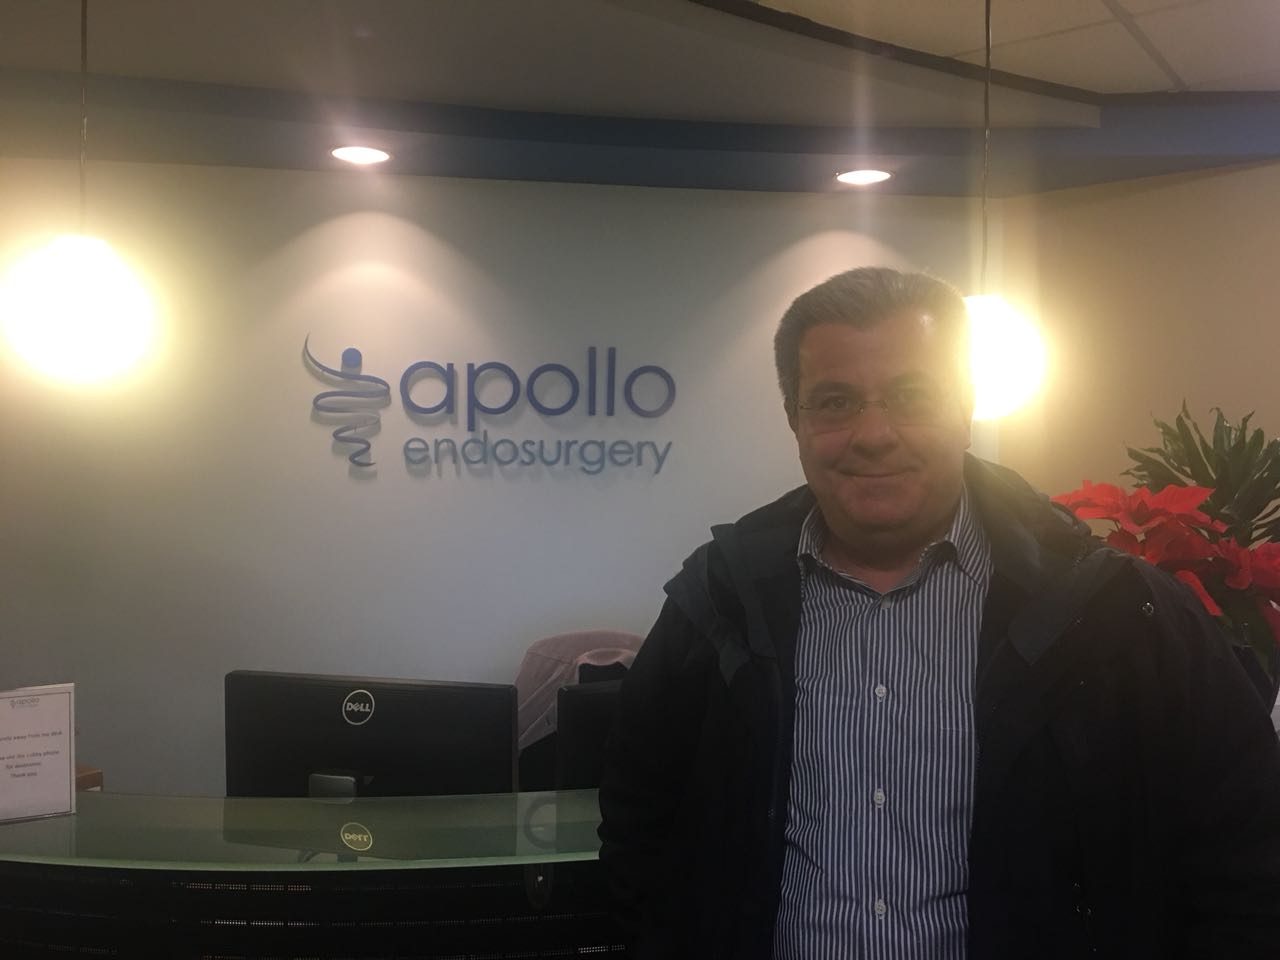 Visita à Apollo Endosurgery